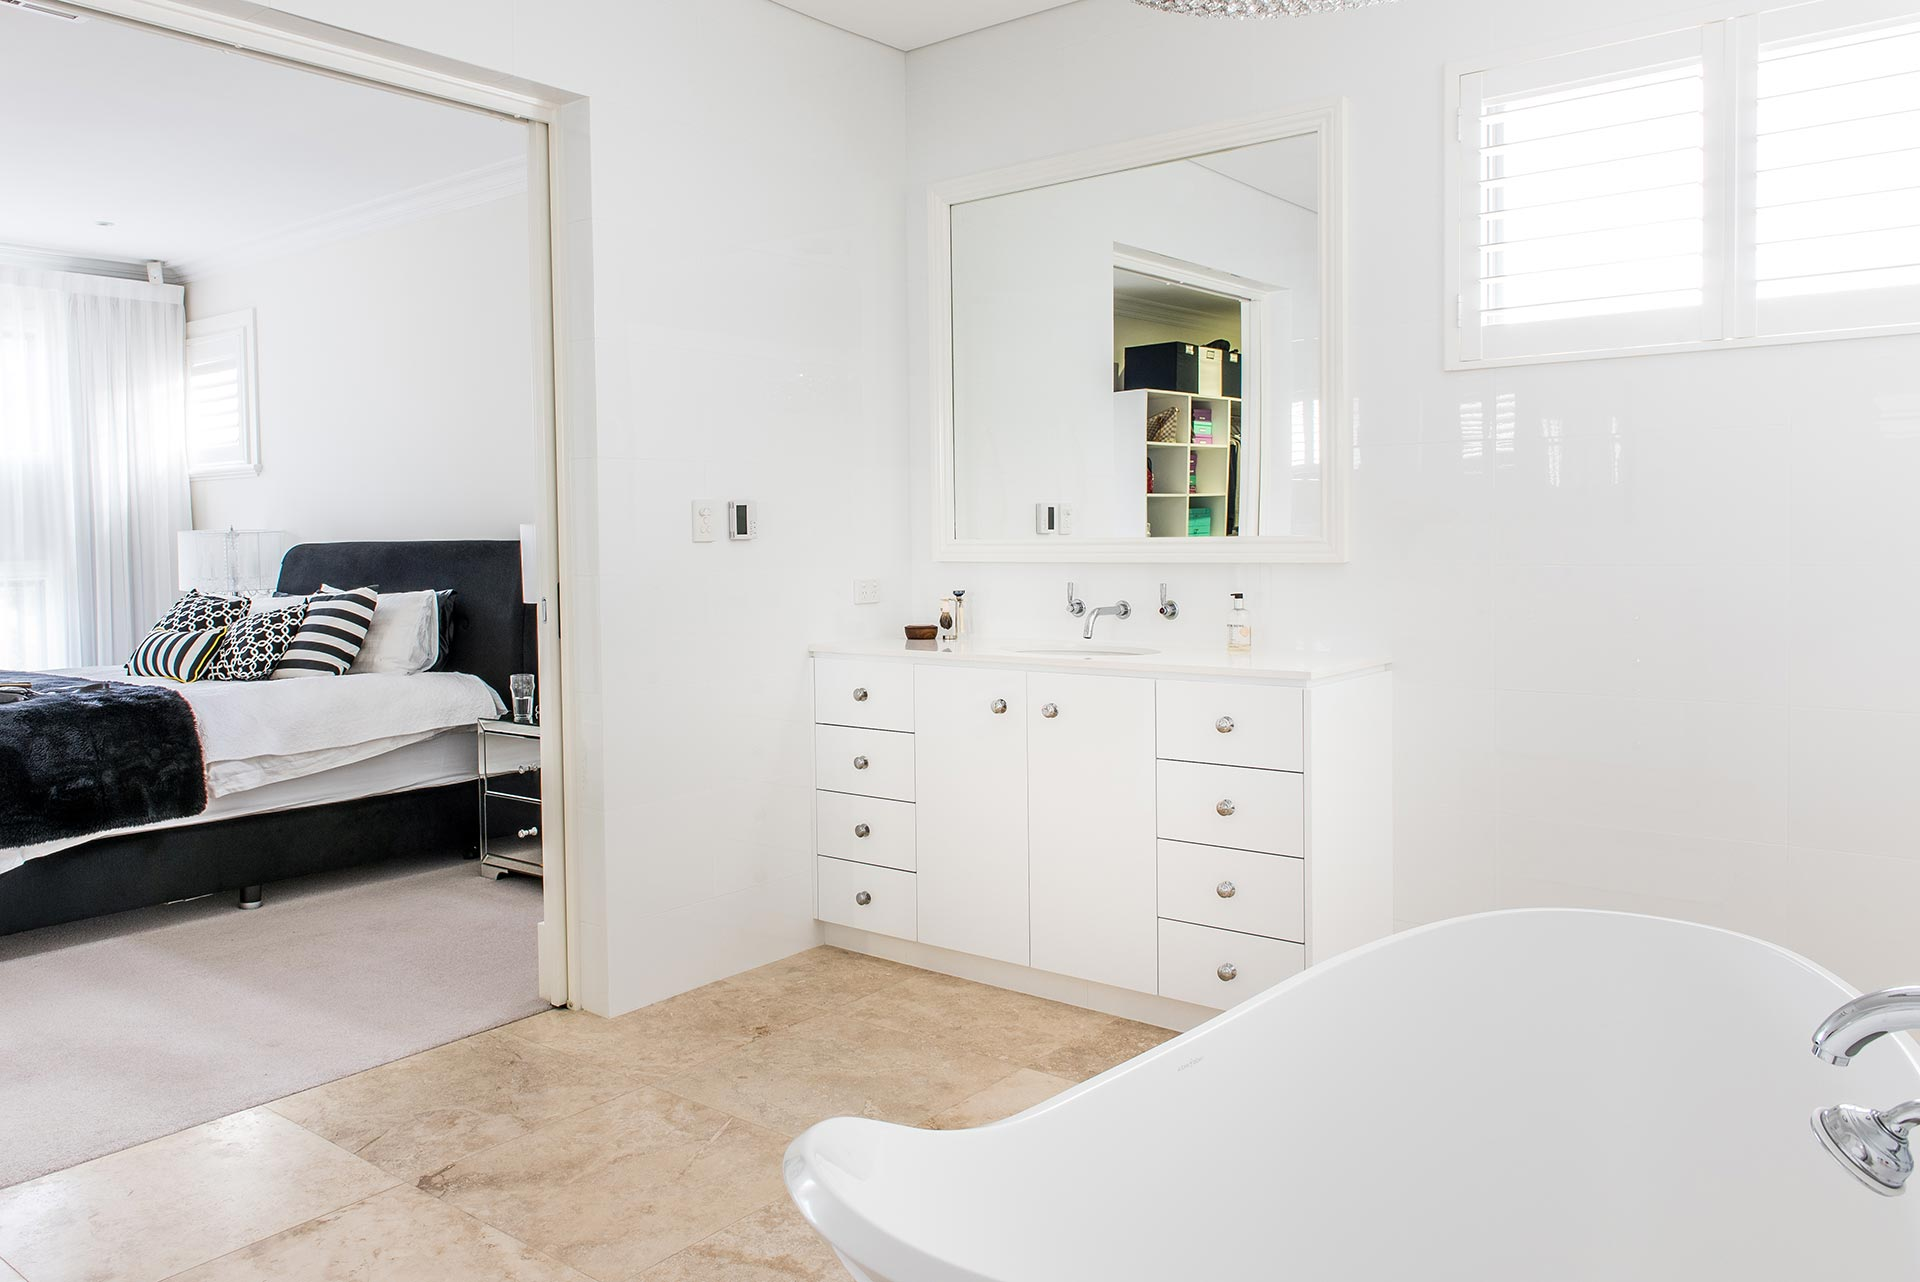 Bathroom designers perth - For More Information About Our Bathroom Renovations In Perth Wa Or To Find Out More About Us Please Contact Us Today On 08 9459 0632